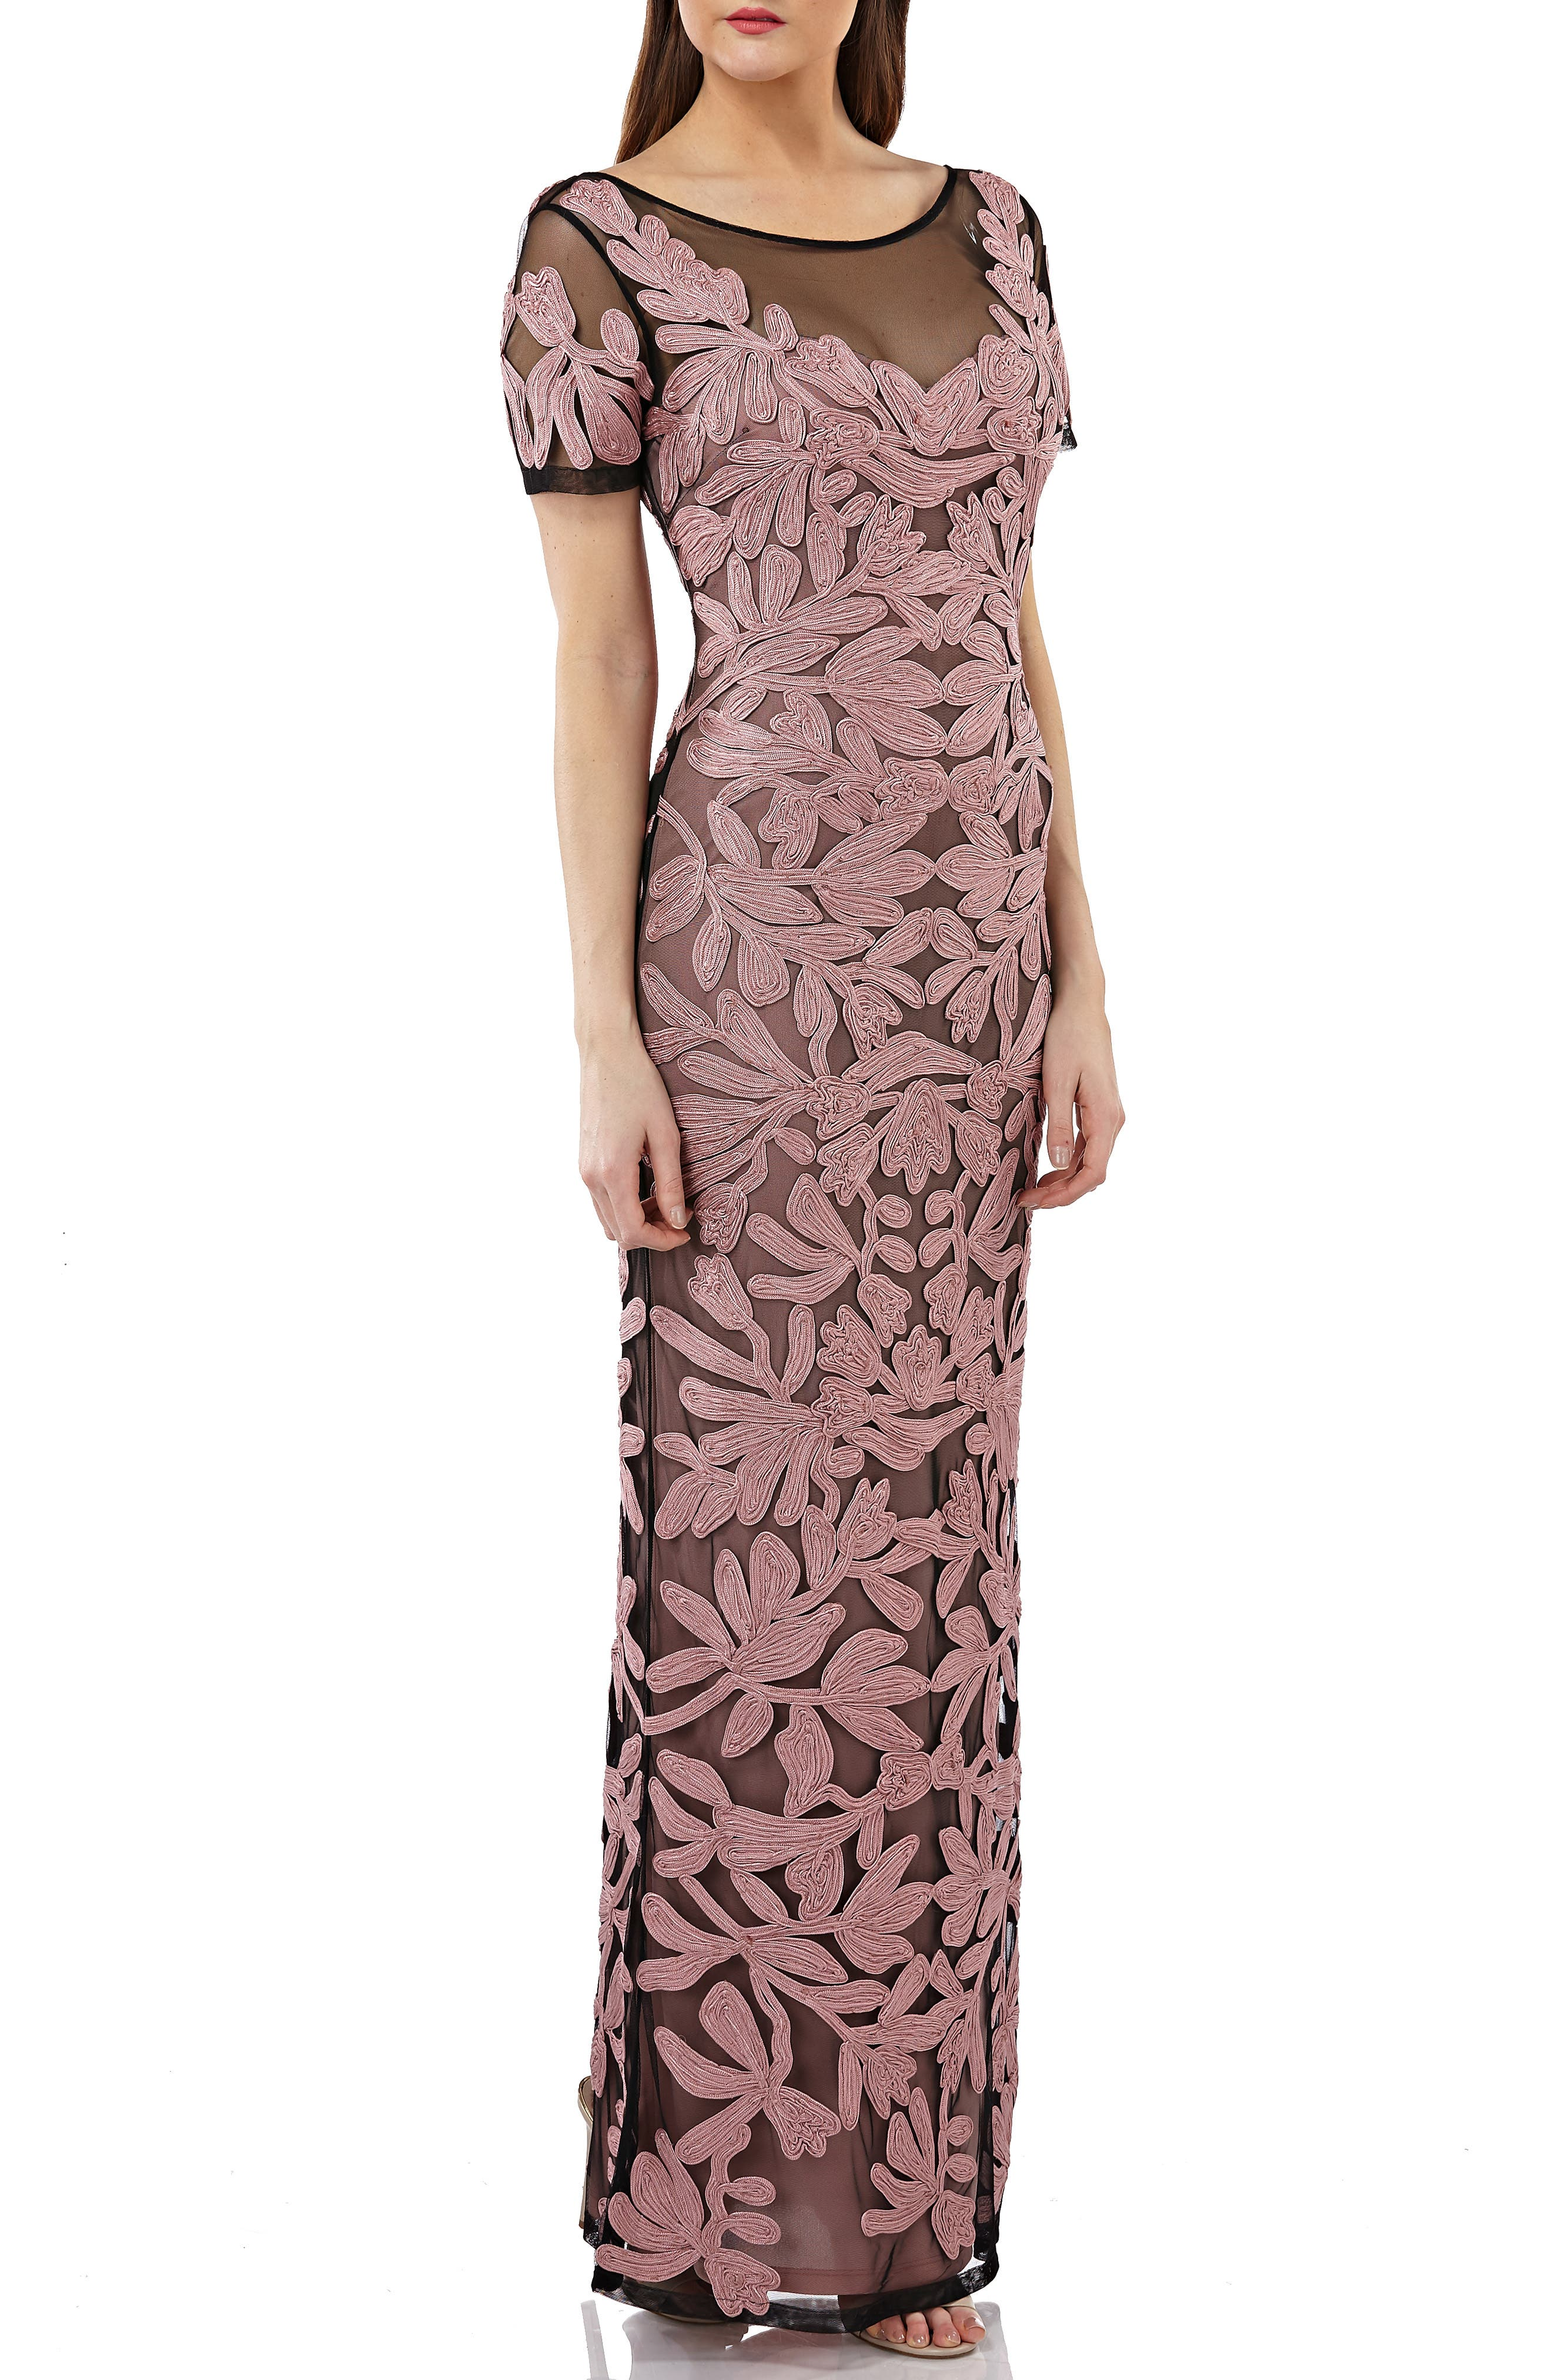 Js Collections Illusion Yoke Short Sleeve Soutache Gown, Pink